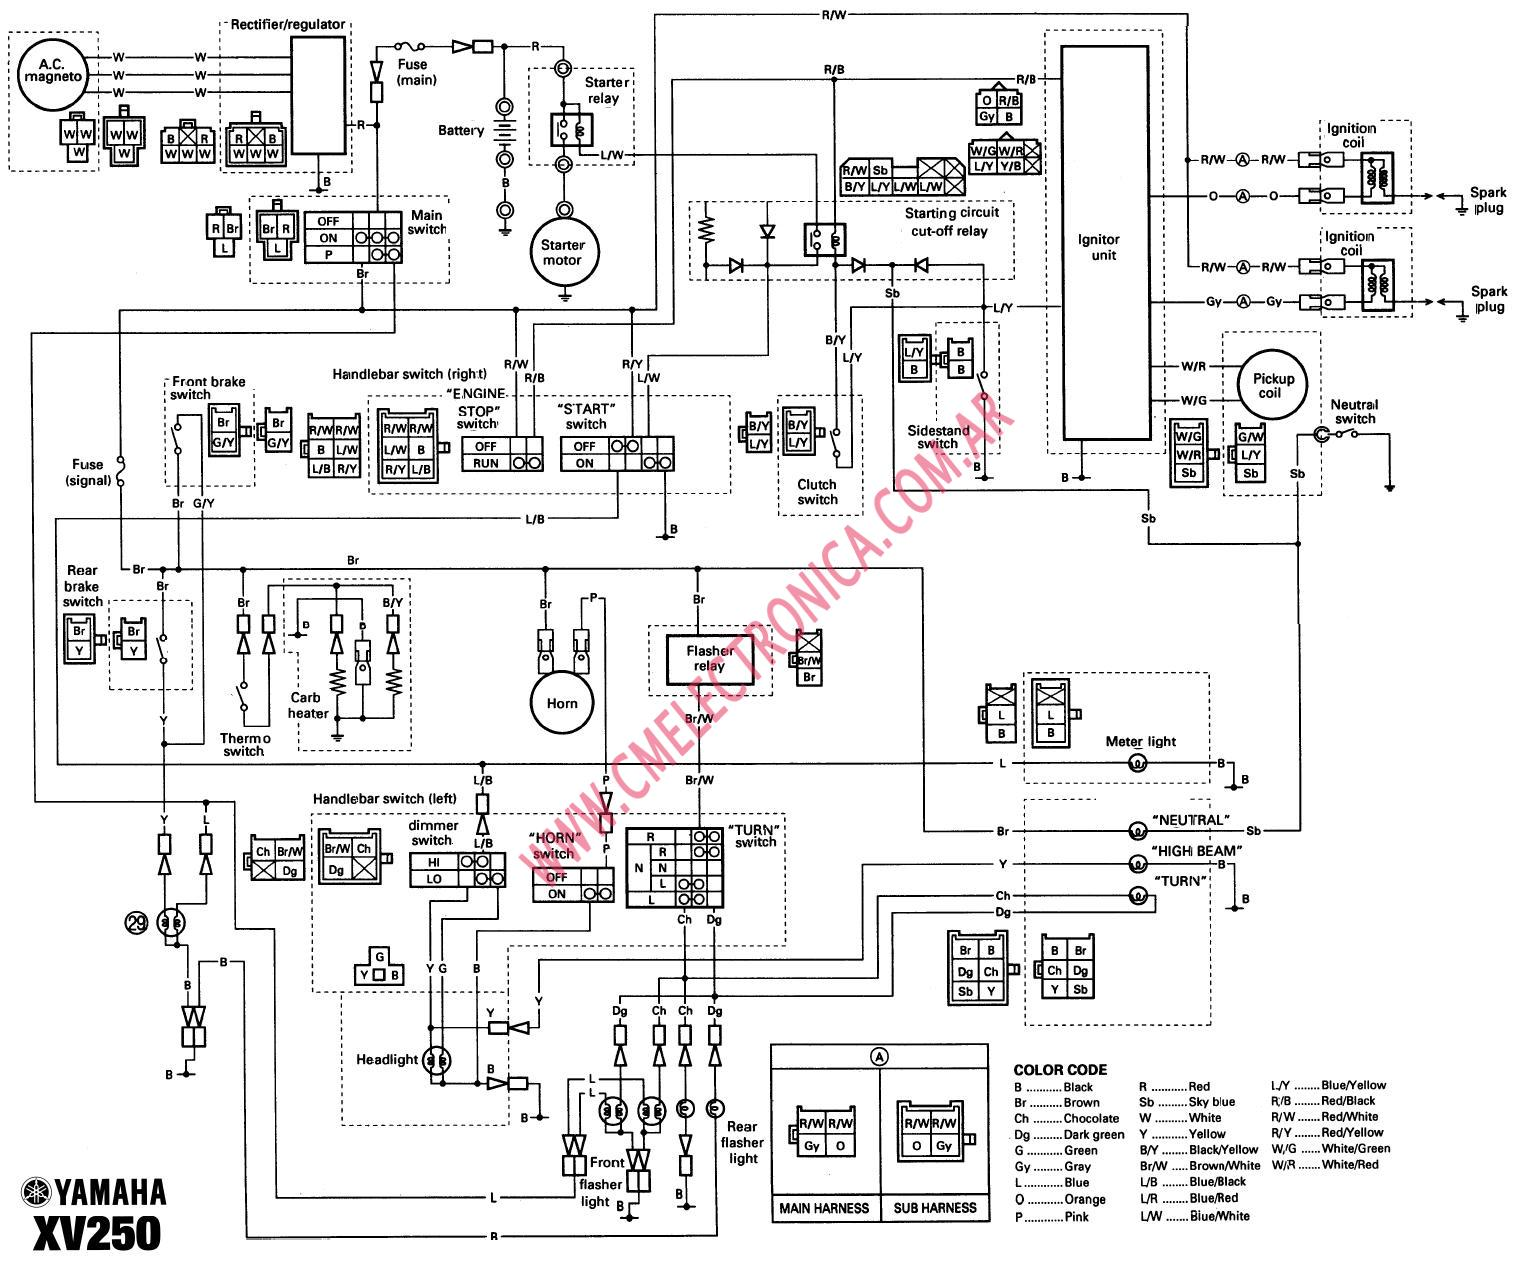 P2098 Jeep in addition Tbi To Tpi Conversion Wiring Diagram moreover P 0996b43f81b3d444 together with T12554277 Power steering belt diagram 2l hdi moreover Honda Pilot Engine Diagram Transmission. on suzuki forenza engine codes